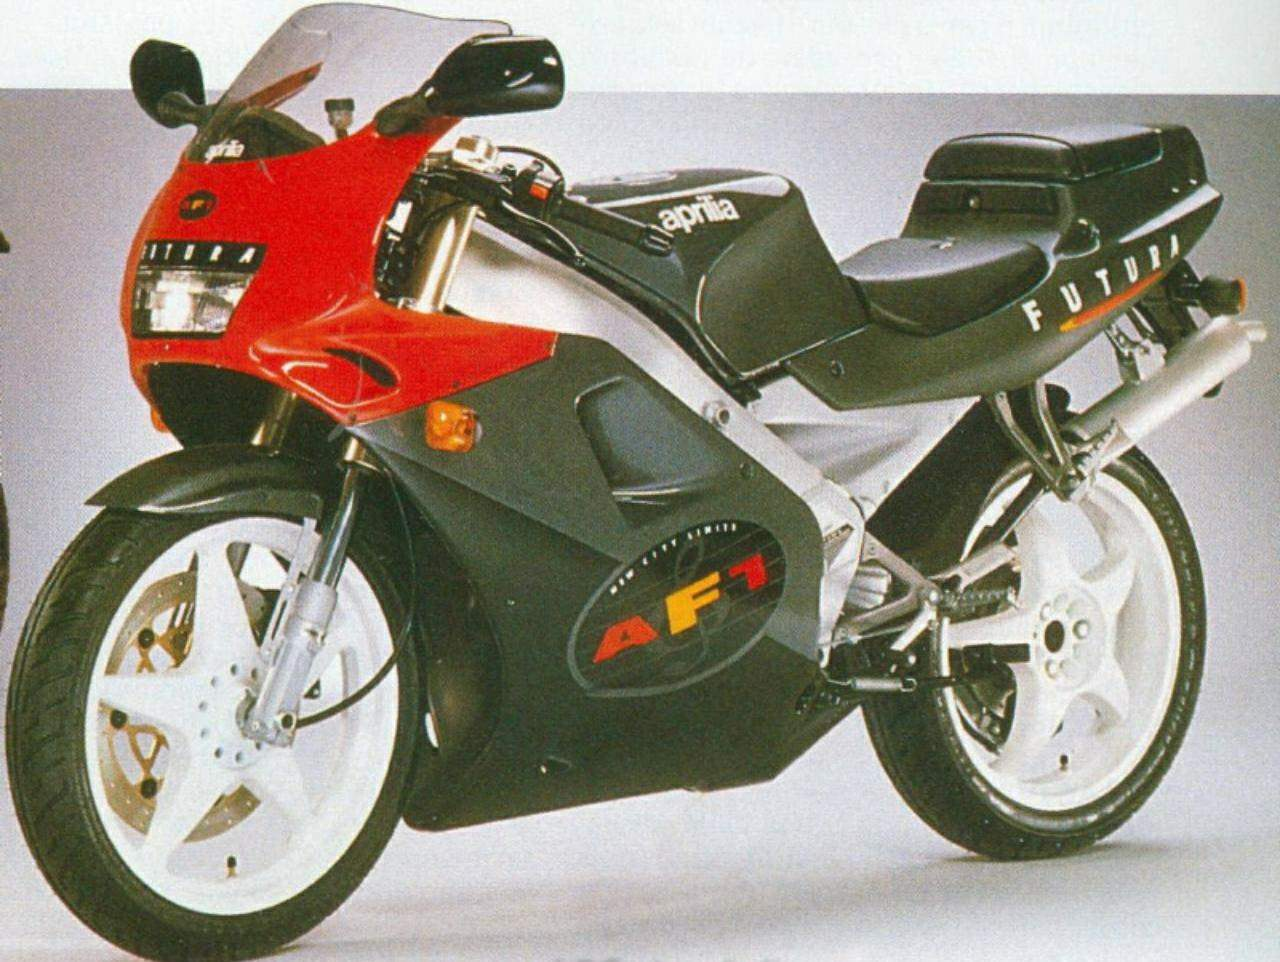 1990 Aprilia Af1 125 Replica Pic 12 Wiring Diagram Back Download Picture Size 1280x962 Next